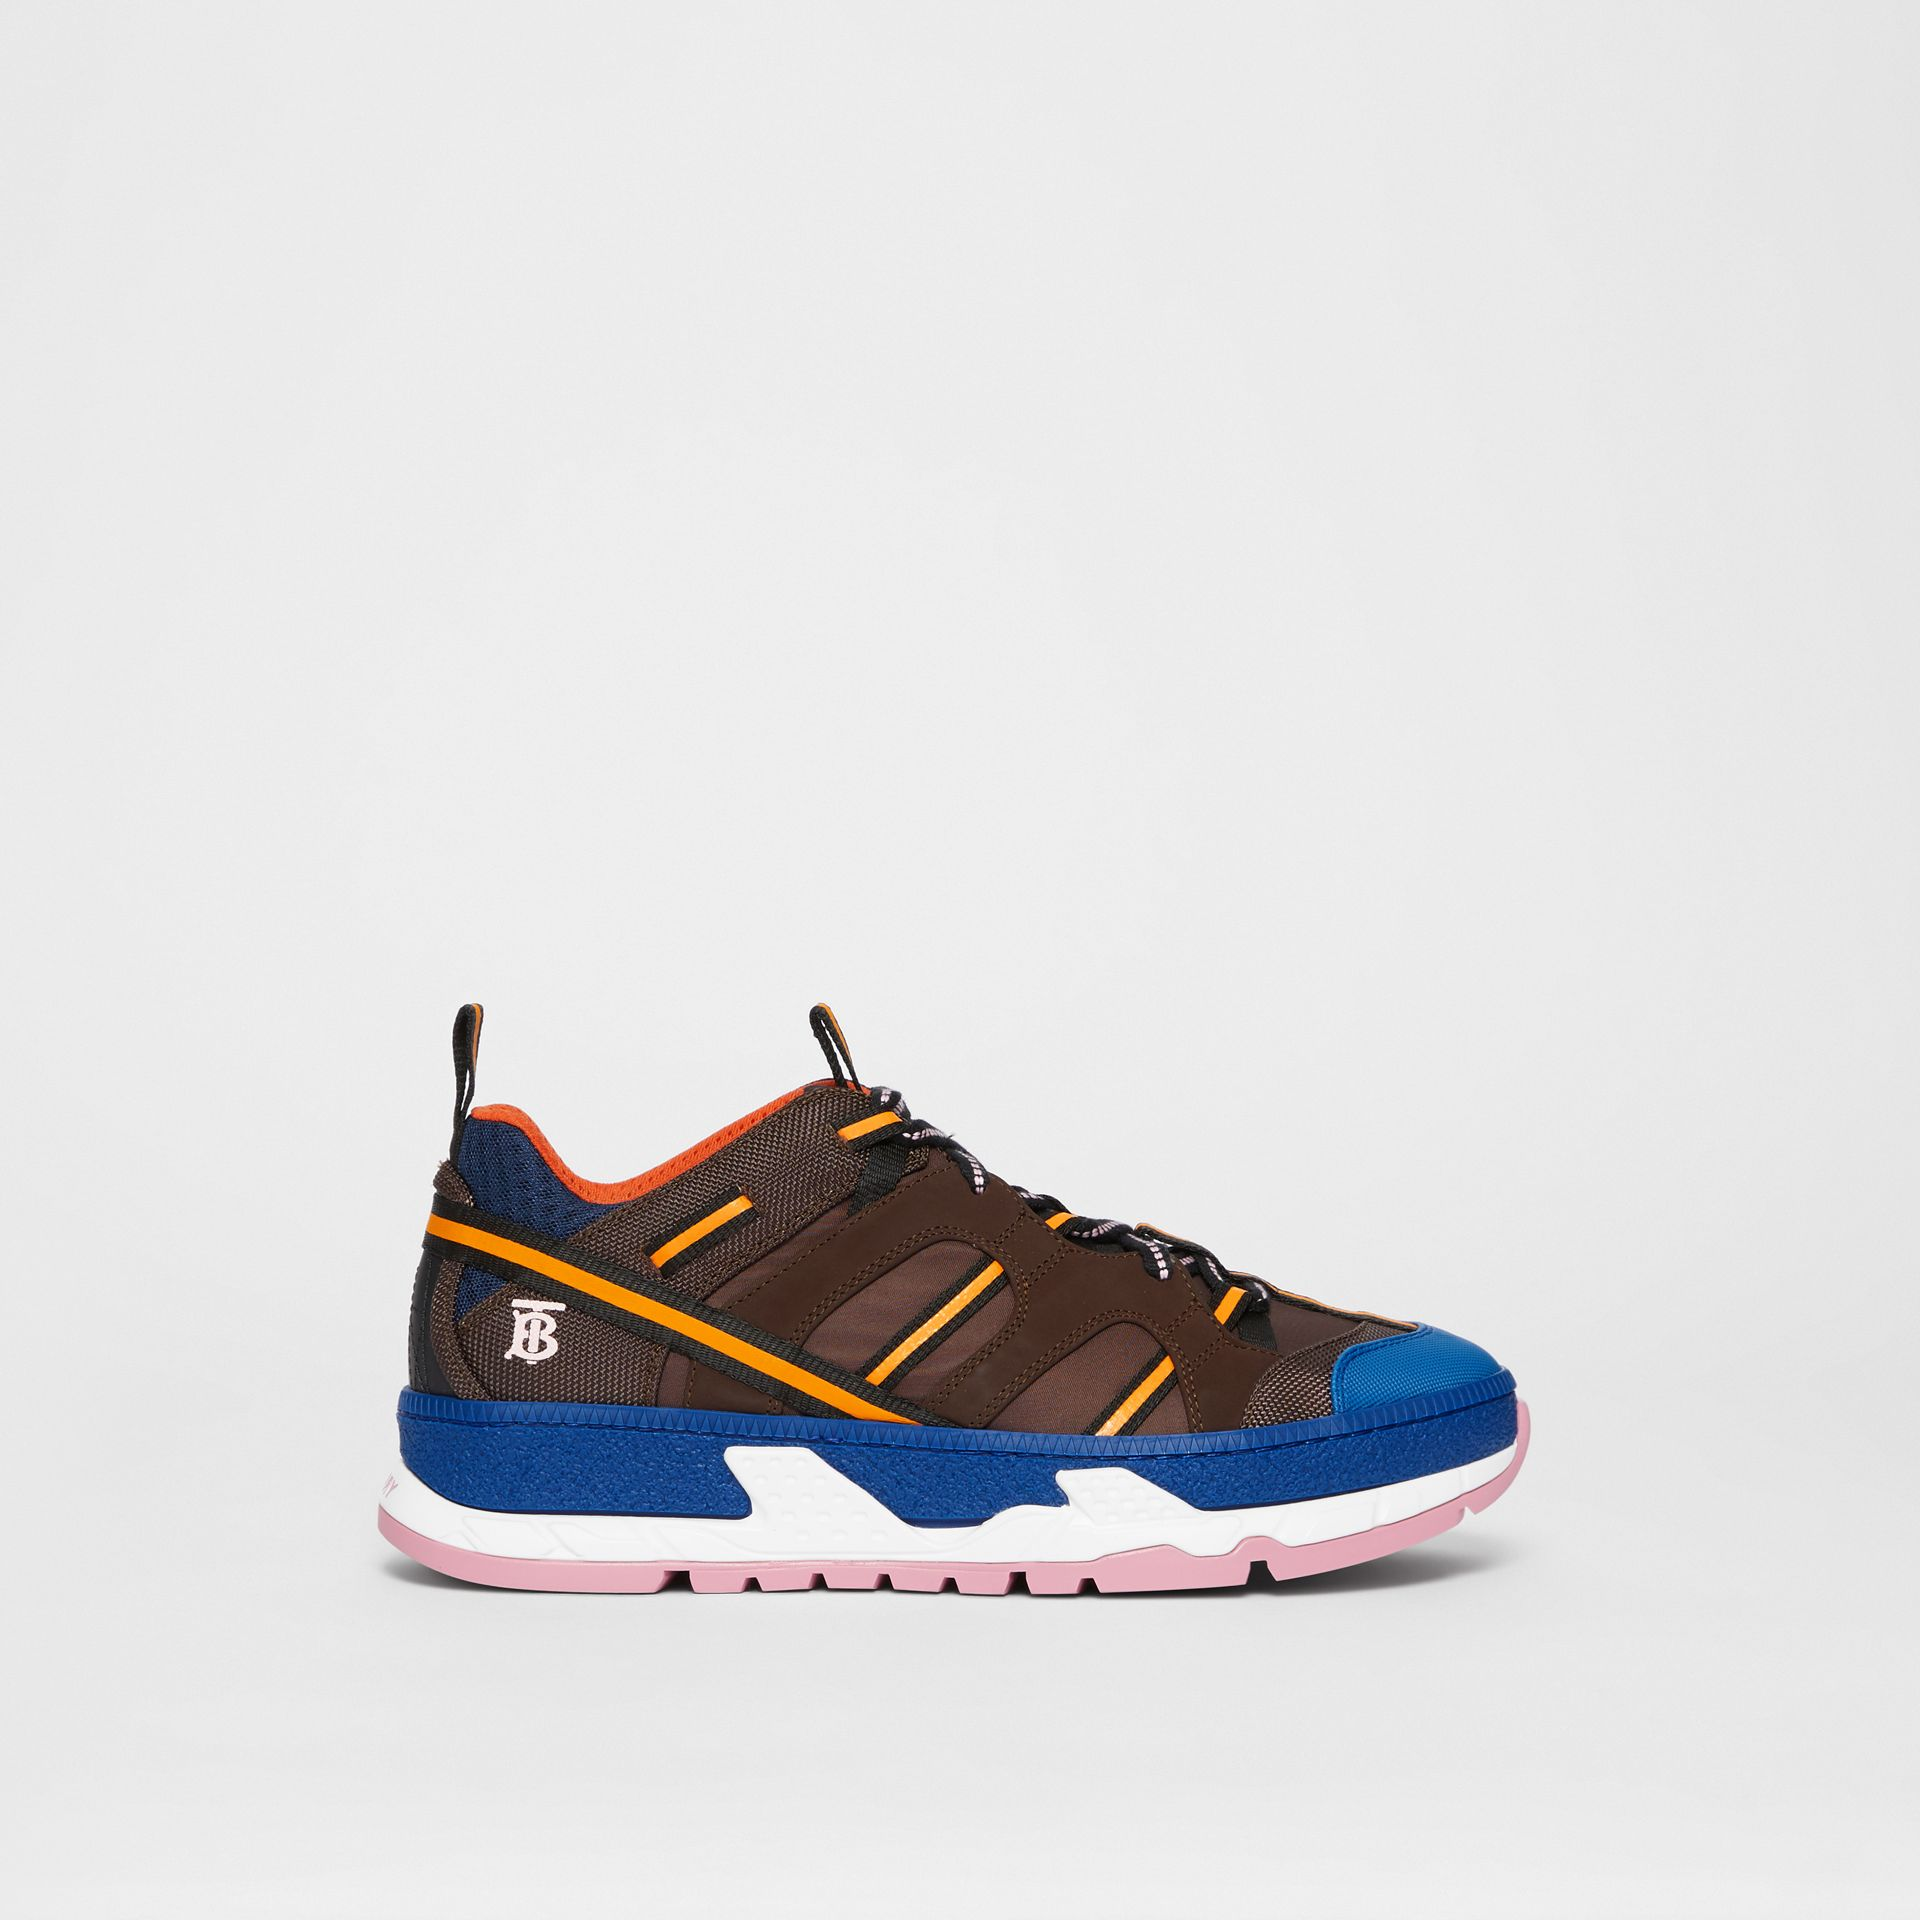 Nylon and Mesh Union Sneakers in Coffee/blue - Men | Burberry - gallery image 5